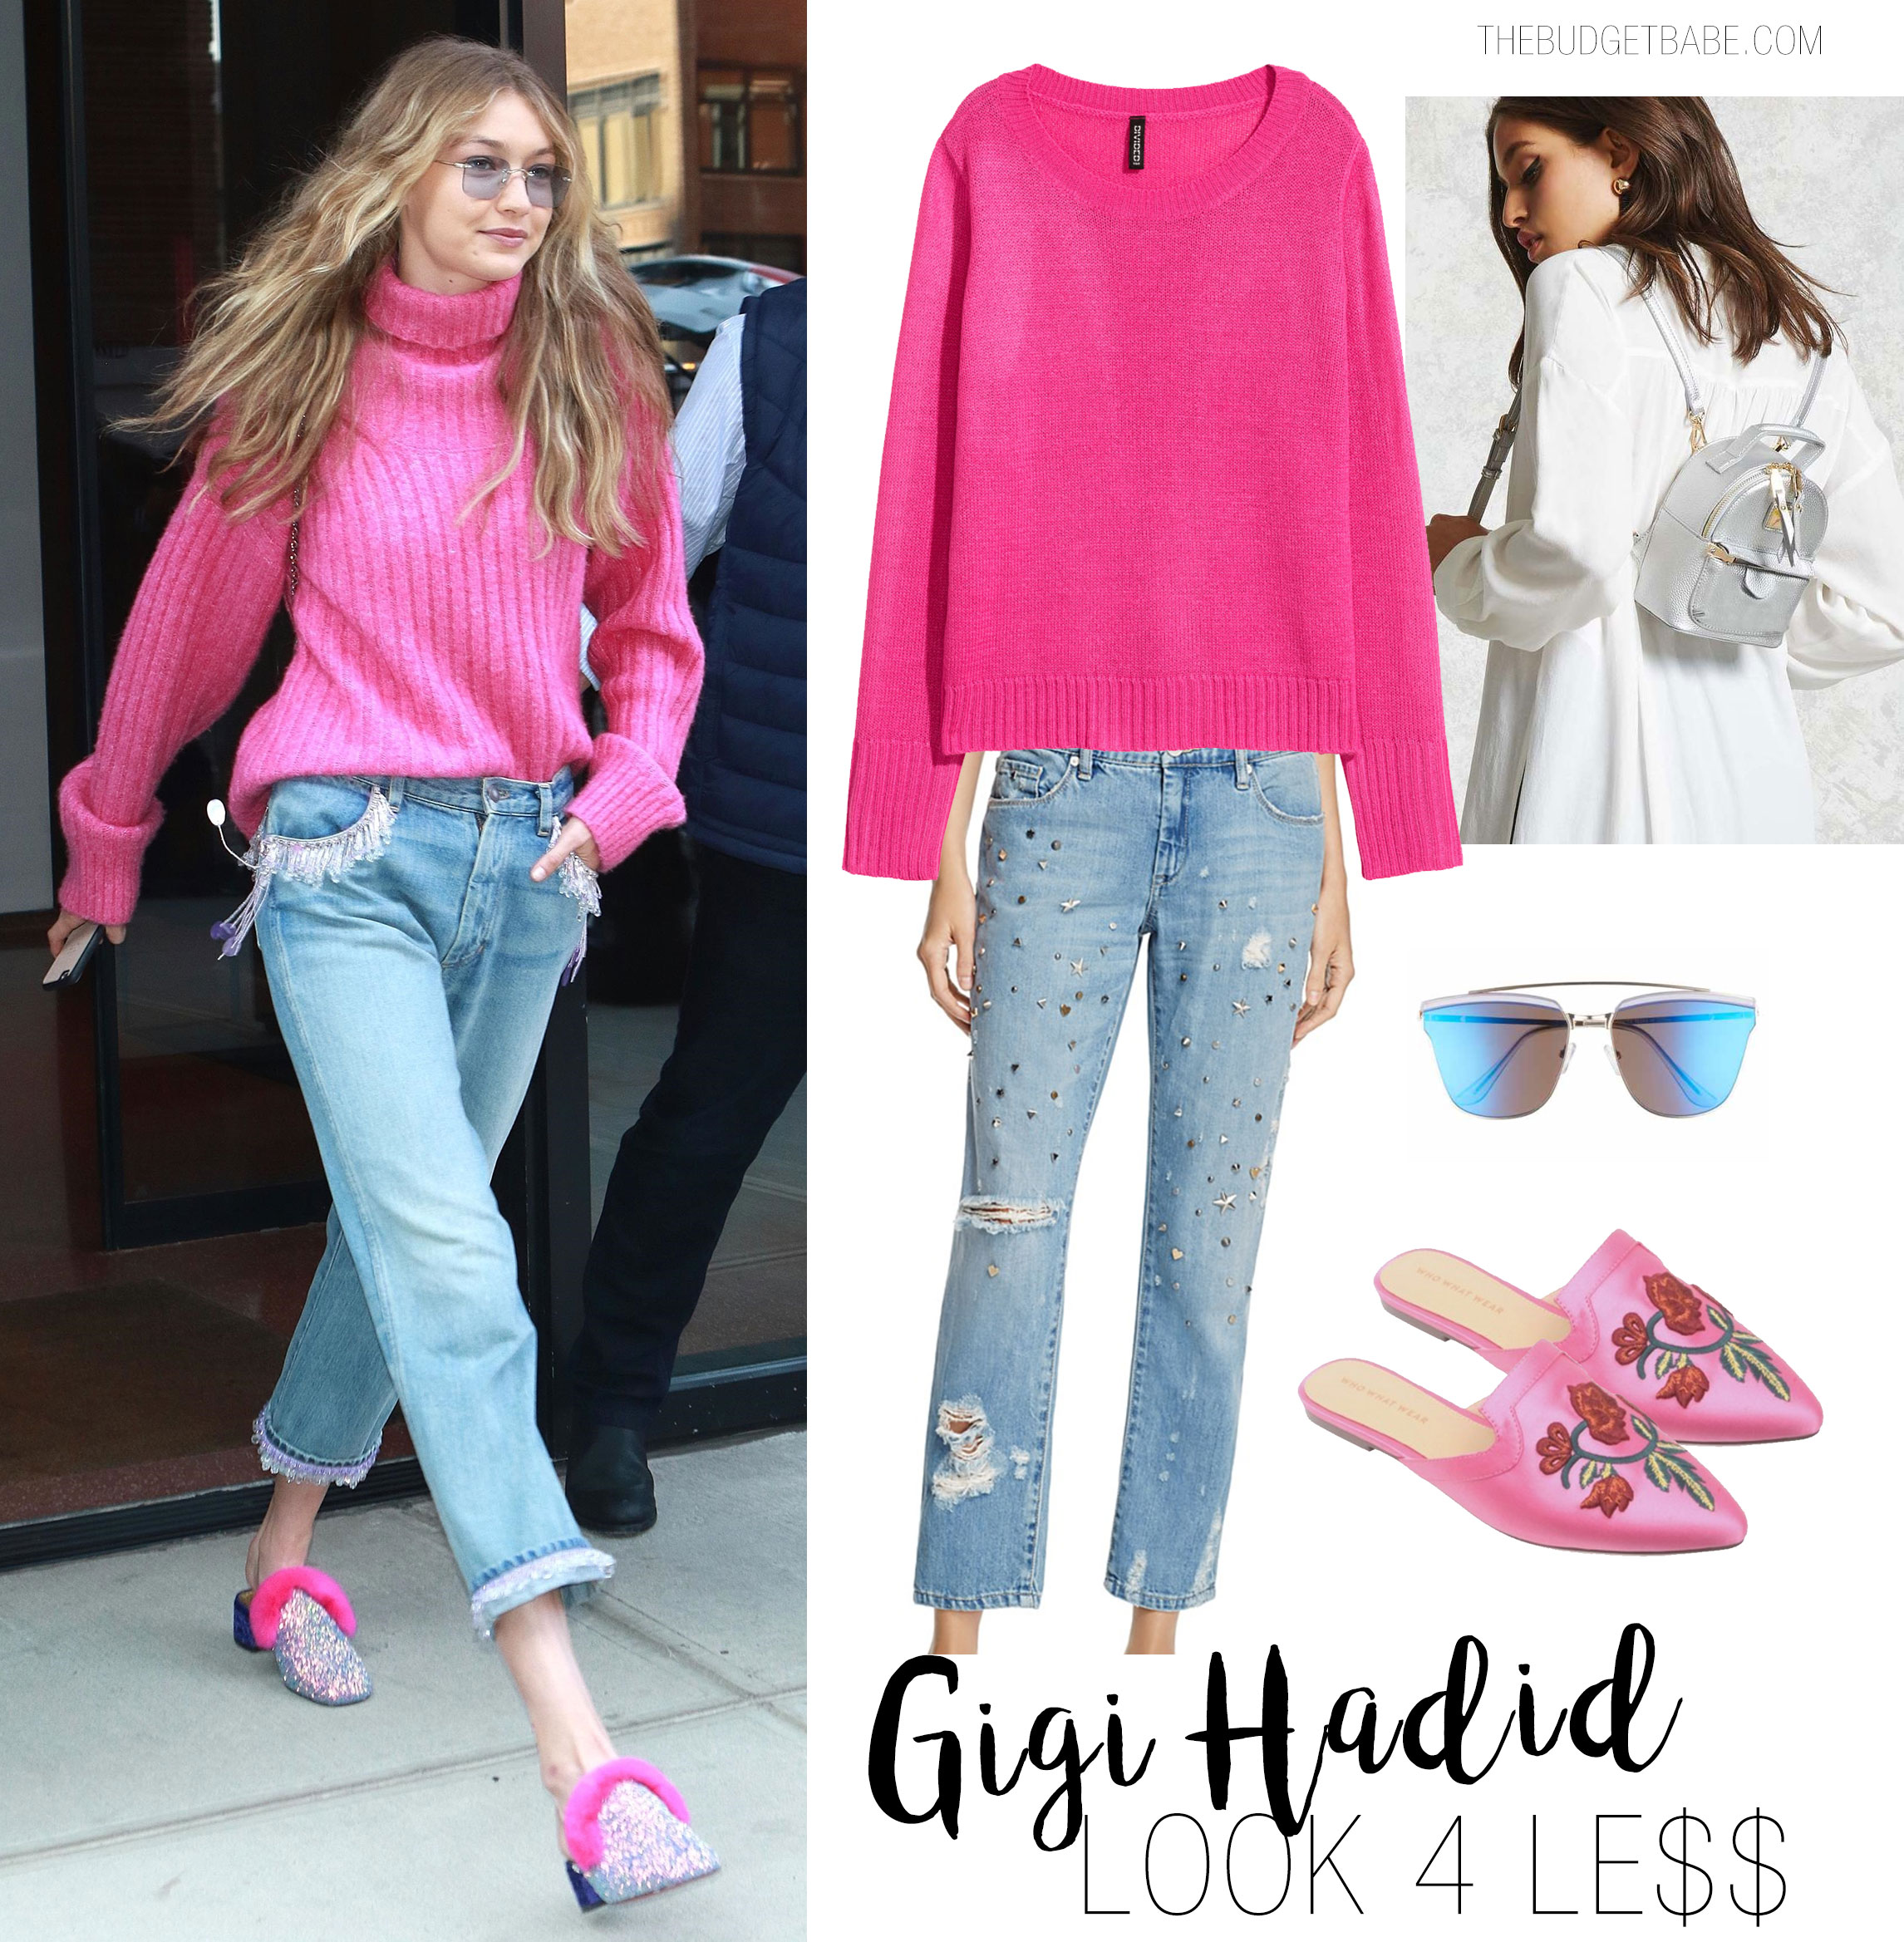 Gigi Hadid wears a hot pink turtleneck sweater with embellished jeans and Christian Louboutin glitter and fur mules.